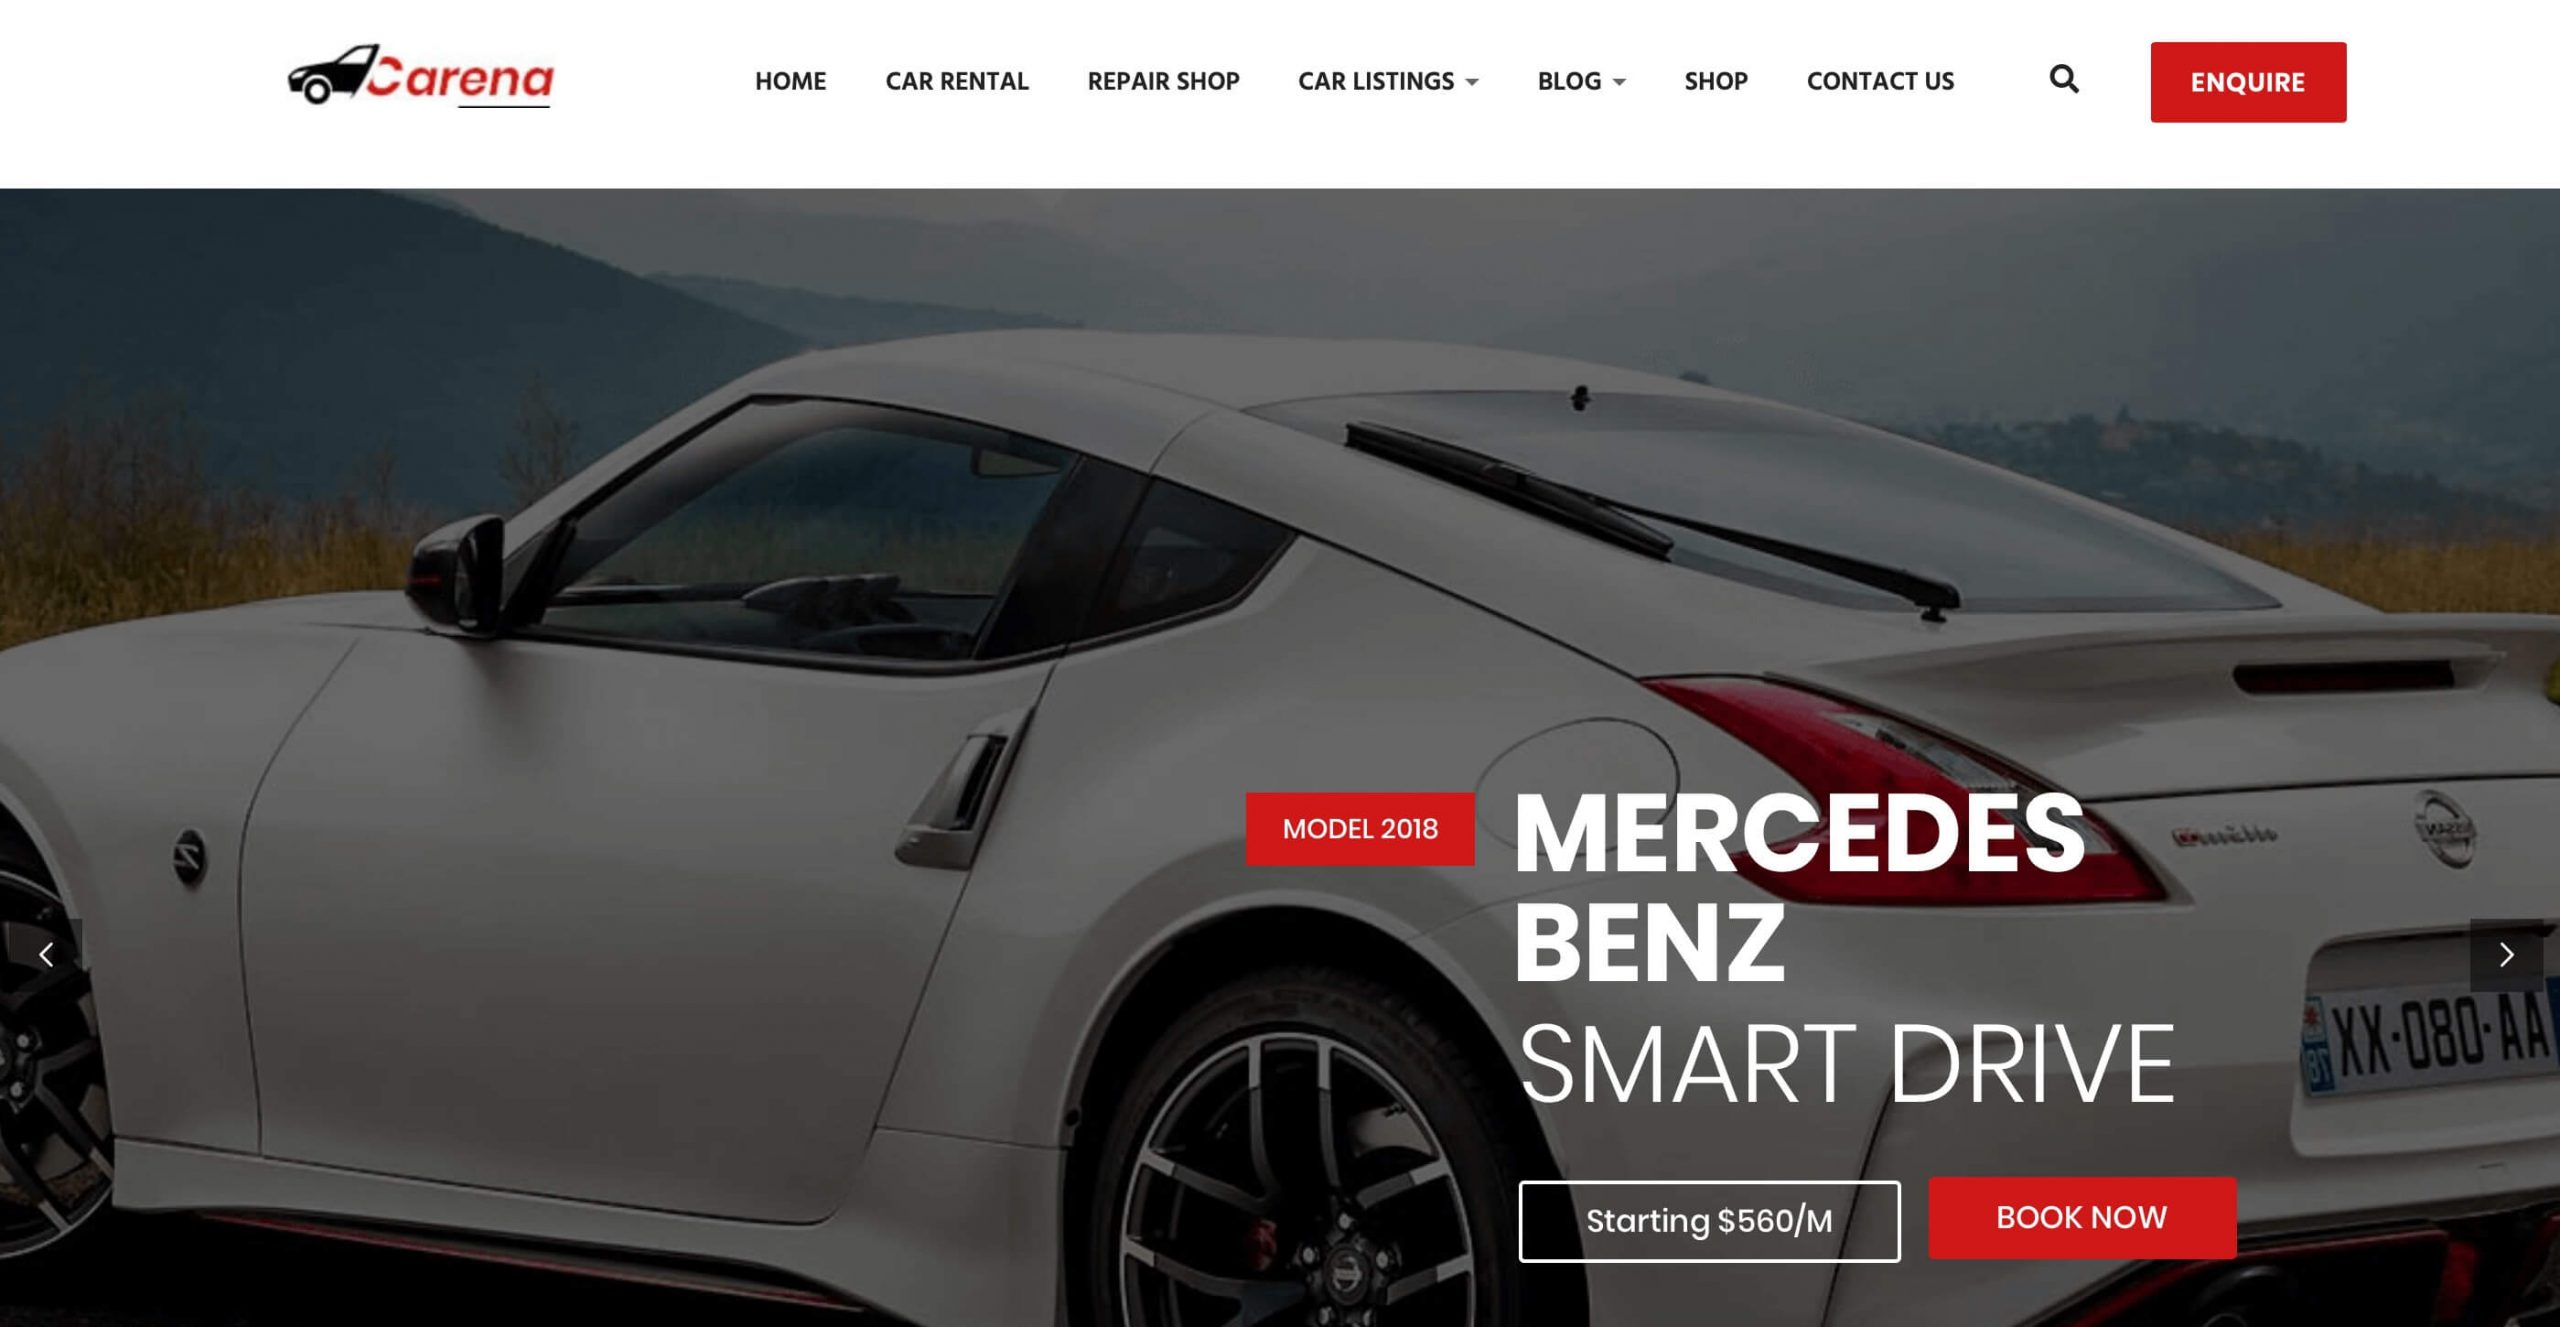 Carena - Car Dealer rental and automotive theme for auto